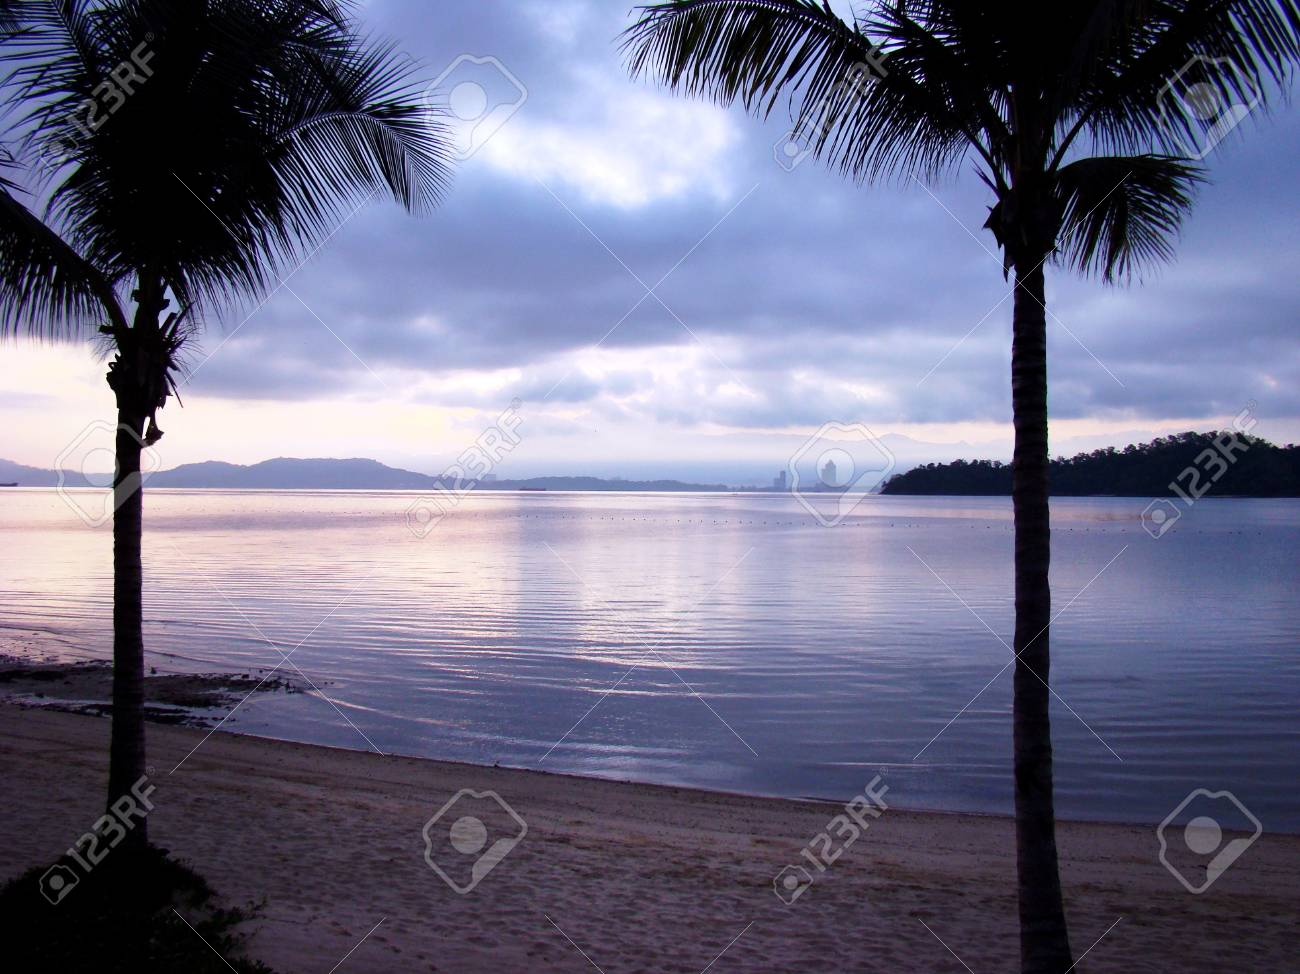 Paradise for couple - a romantic evening on the beach in a tropical exotic island. Silhouettes of two palm trees at sunset - 101448726